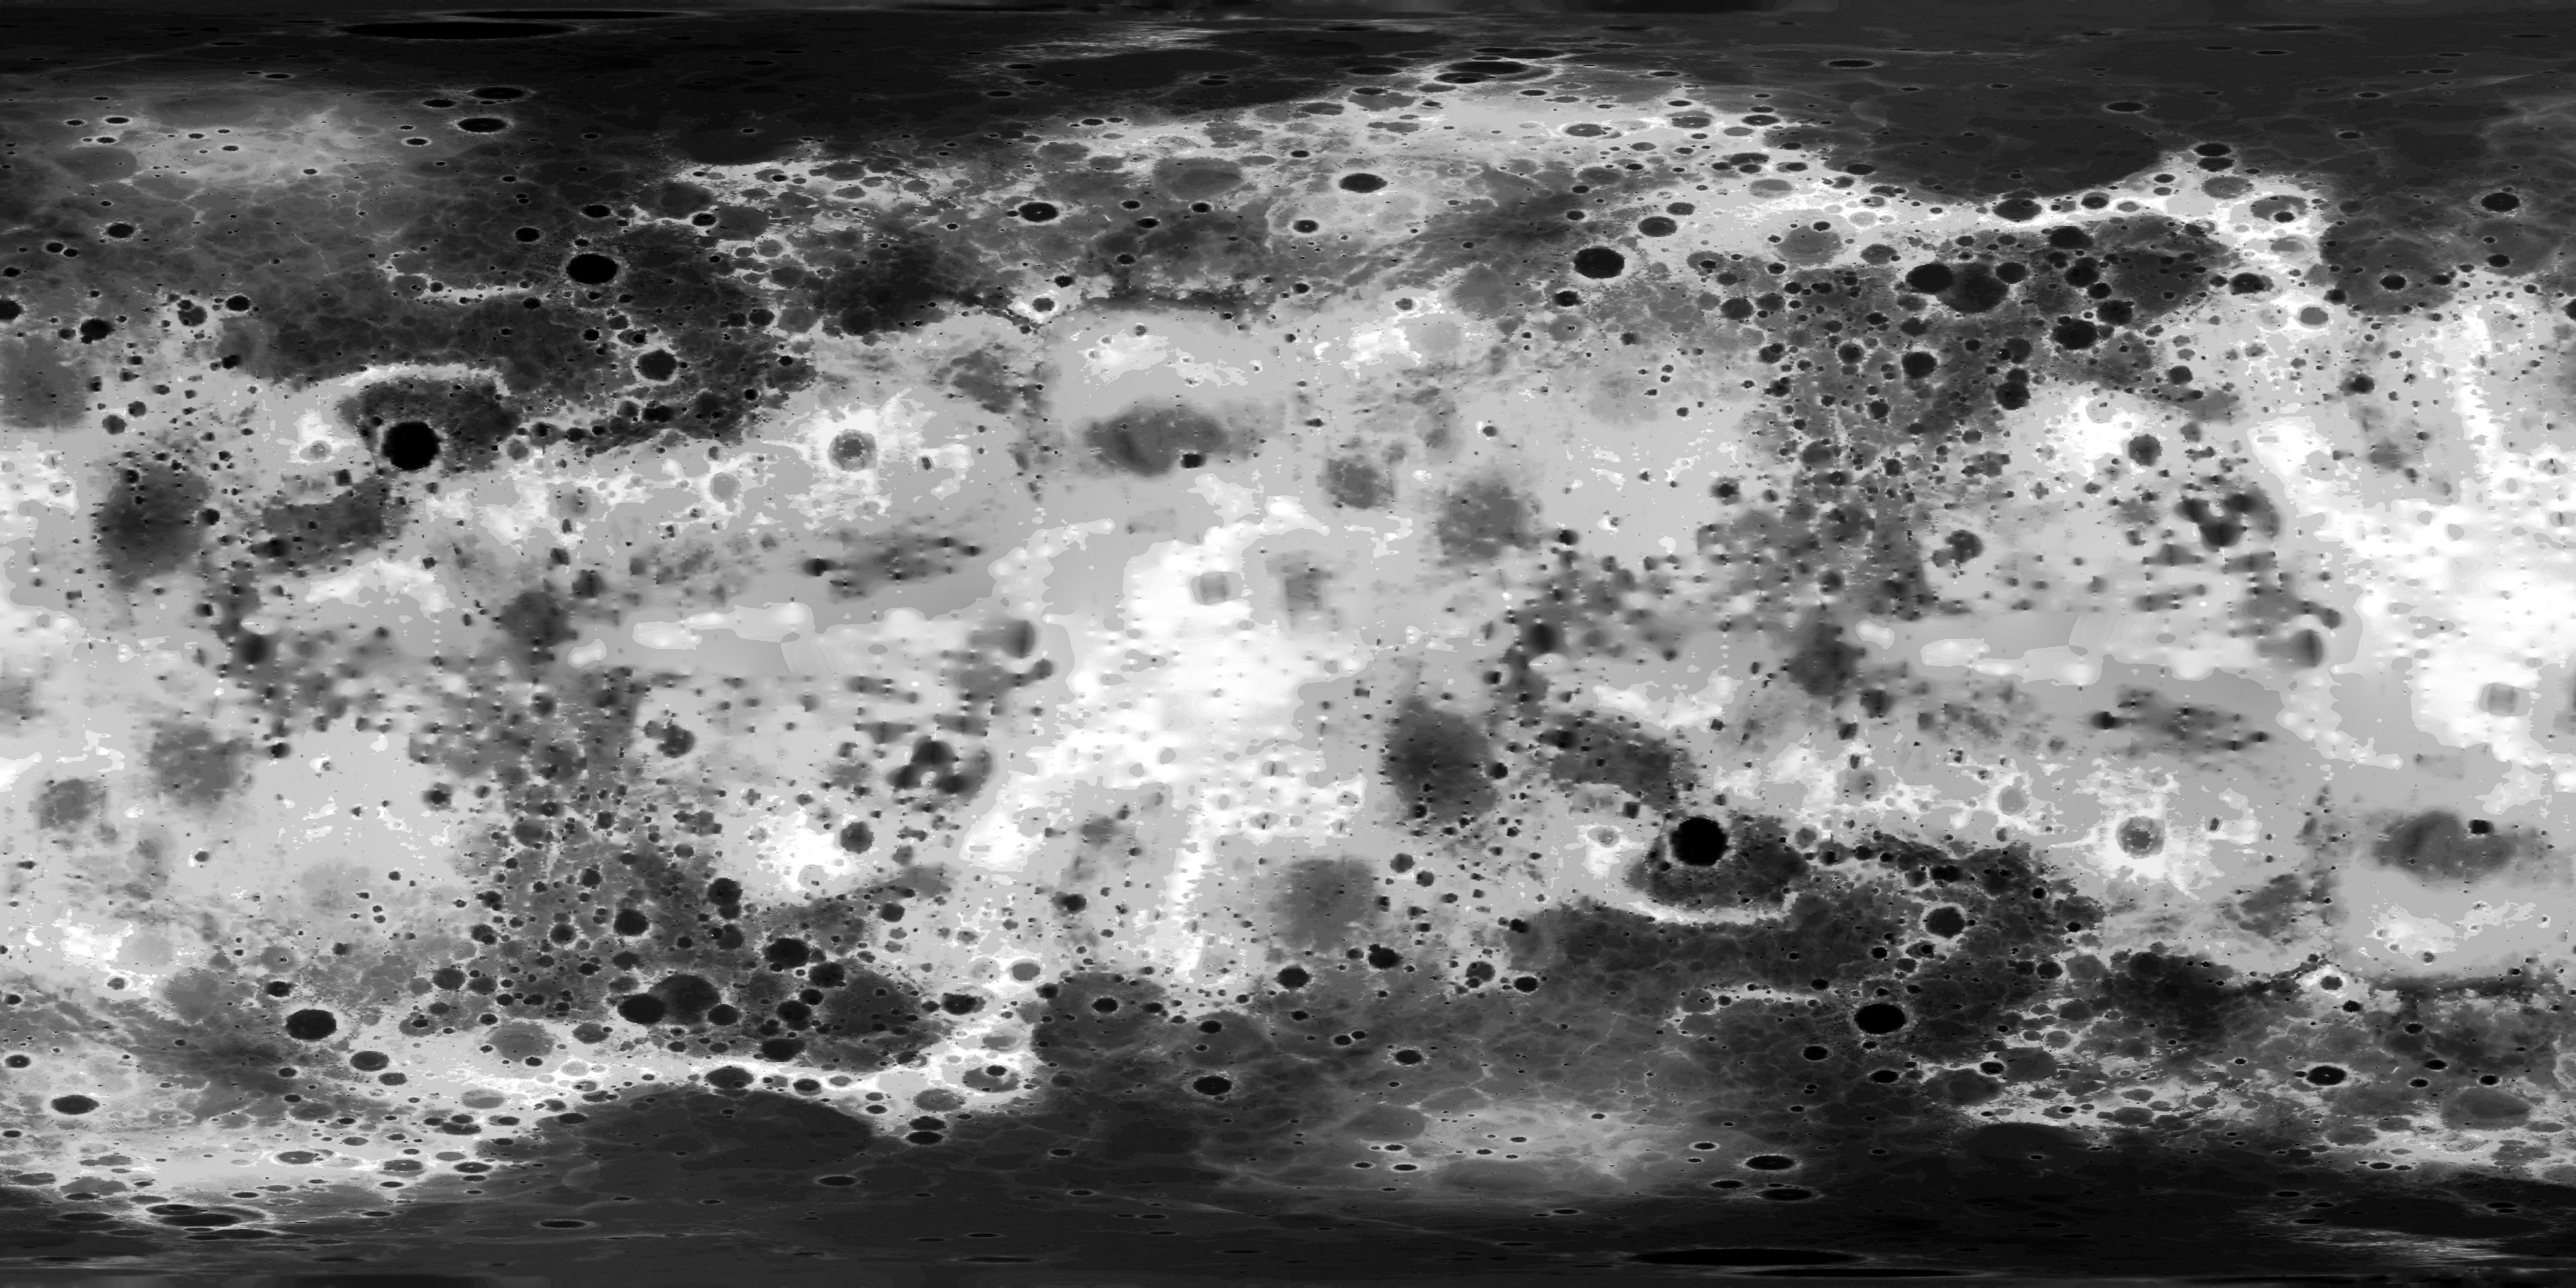 NASAs Mercury Topographic Map Was Inadequate So I Fixed It - Nasa topographic map